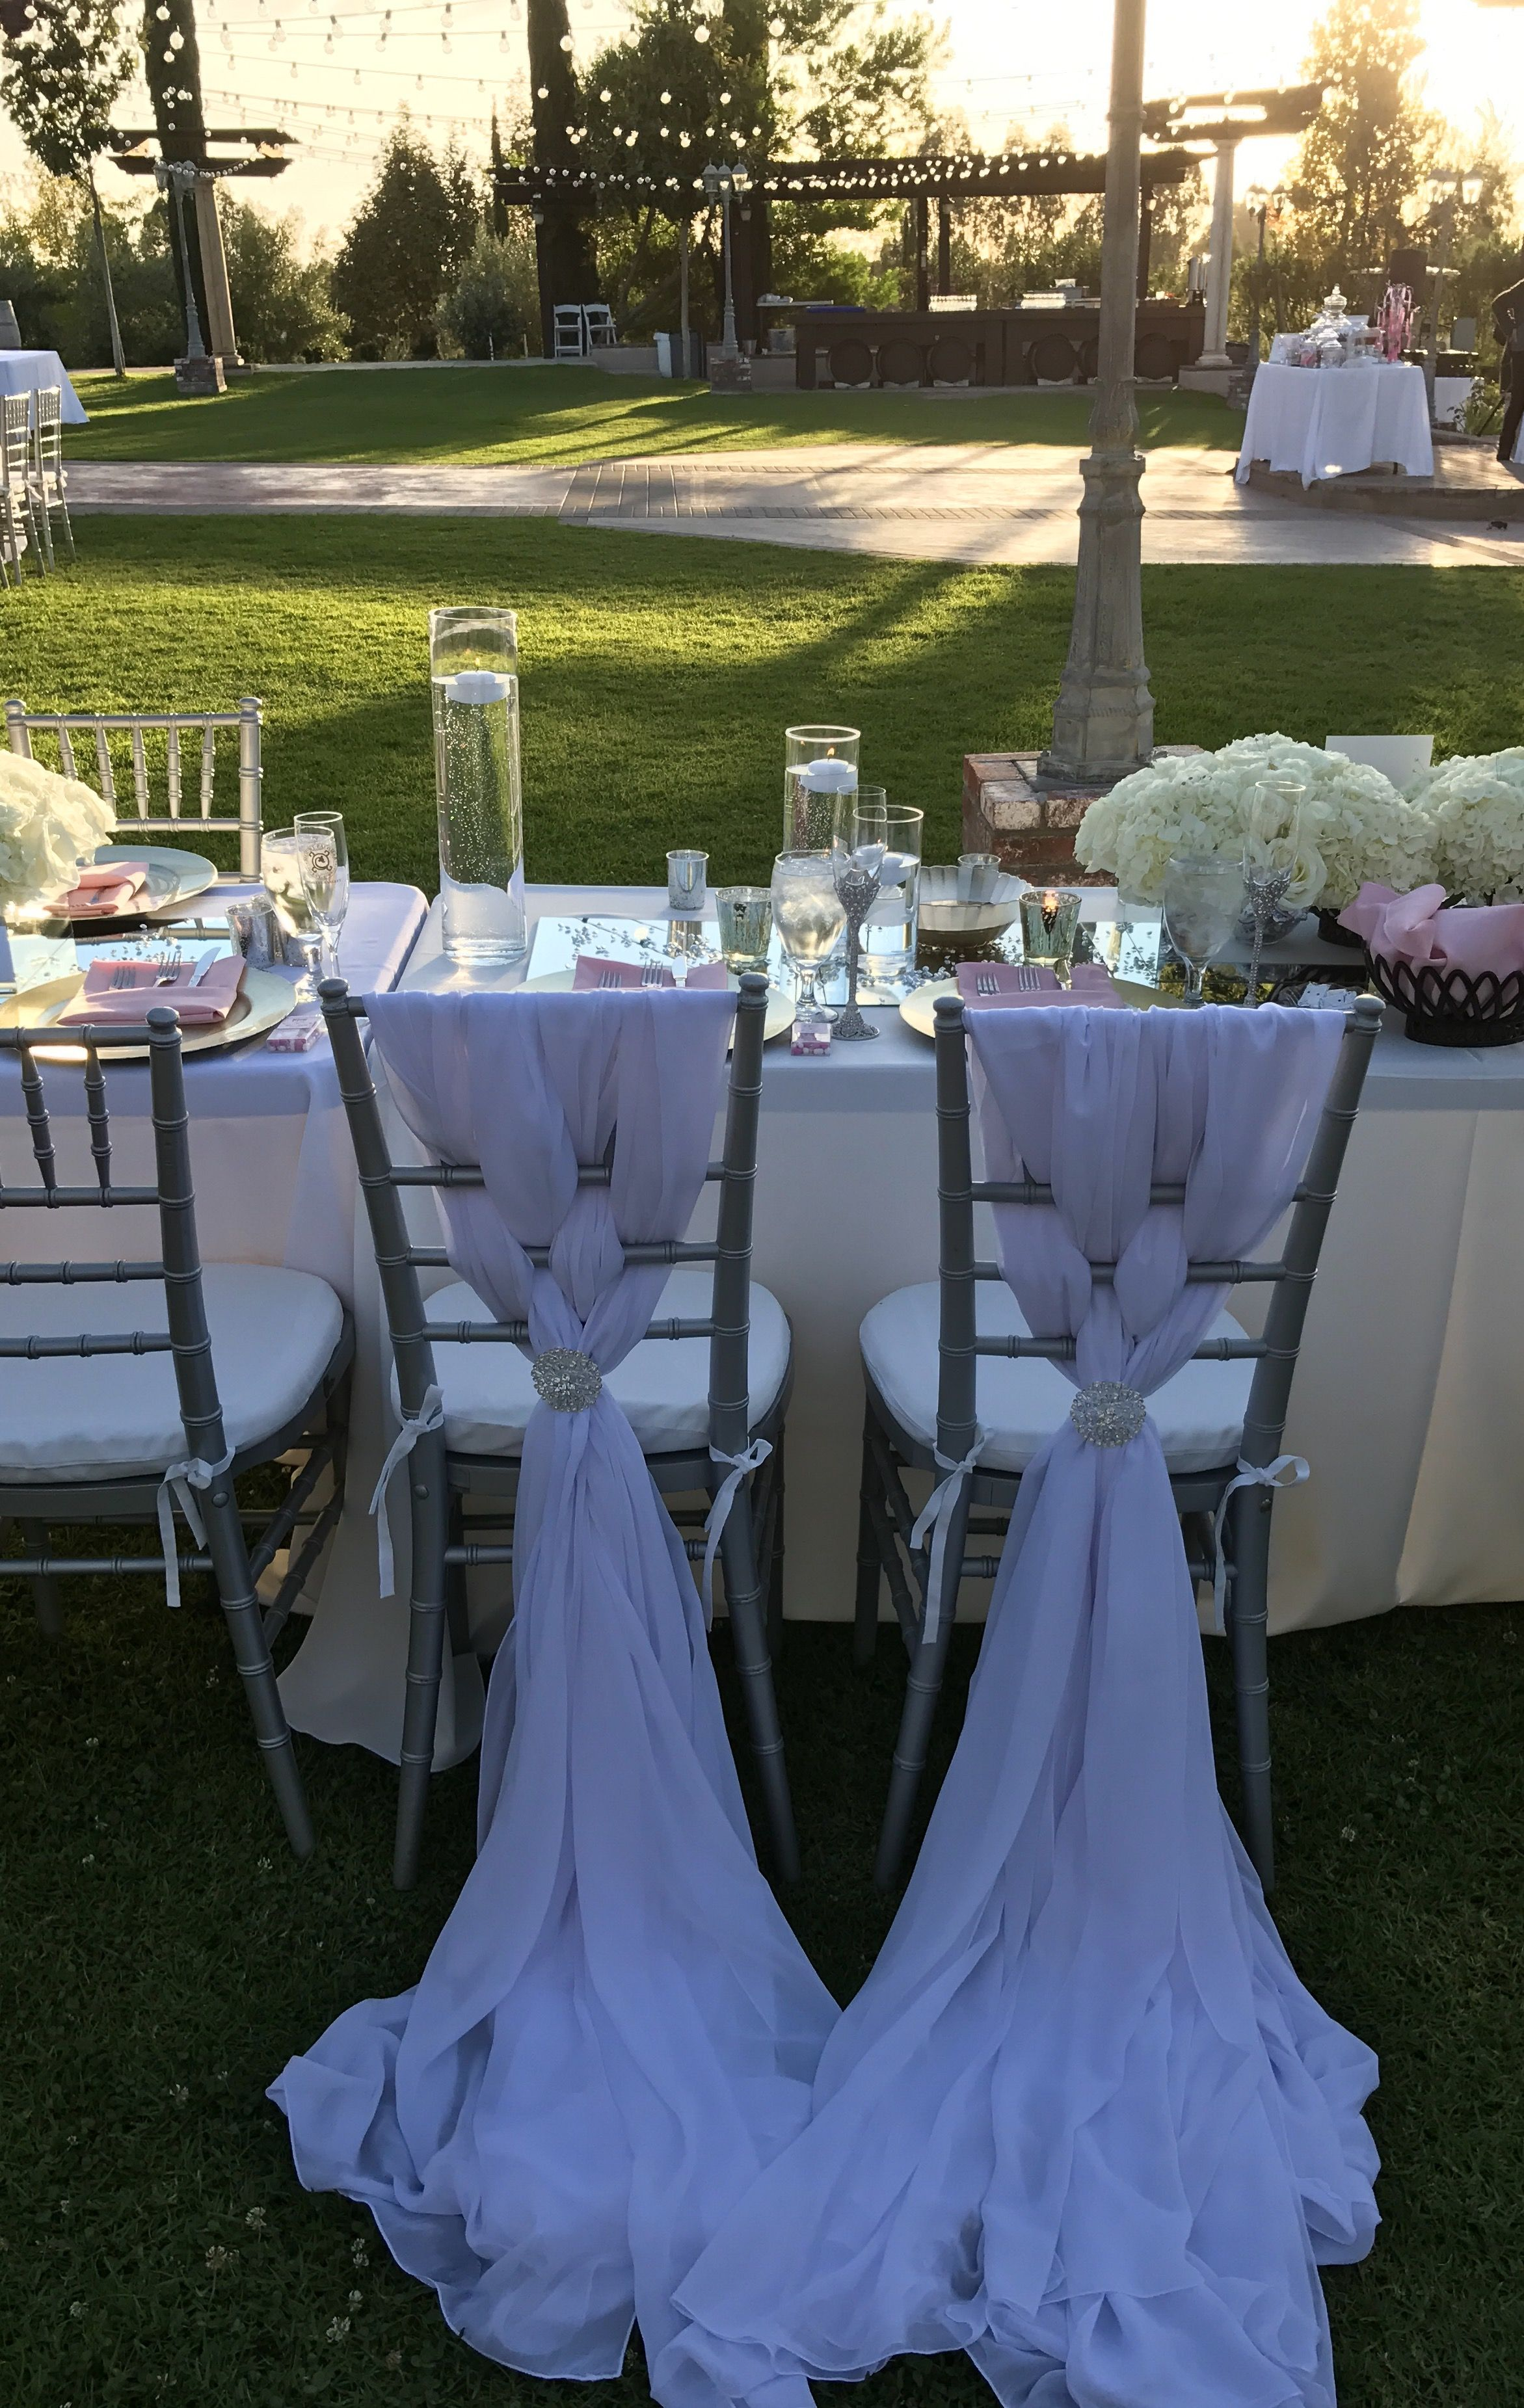 It's a nice day for a white wedding. Temecula Winery.